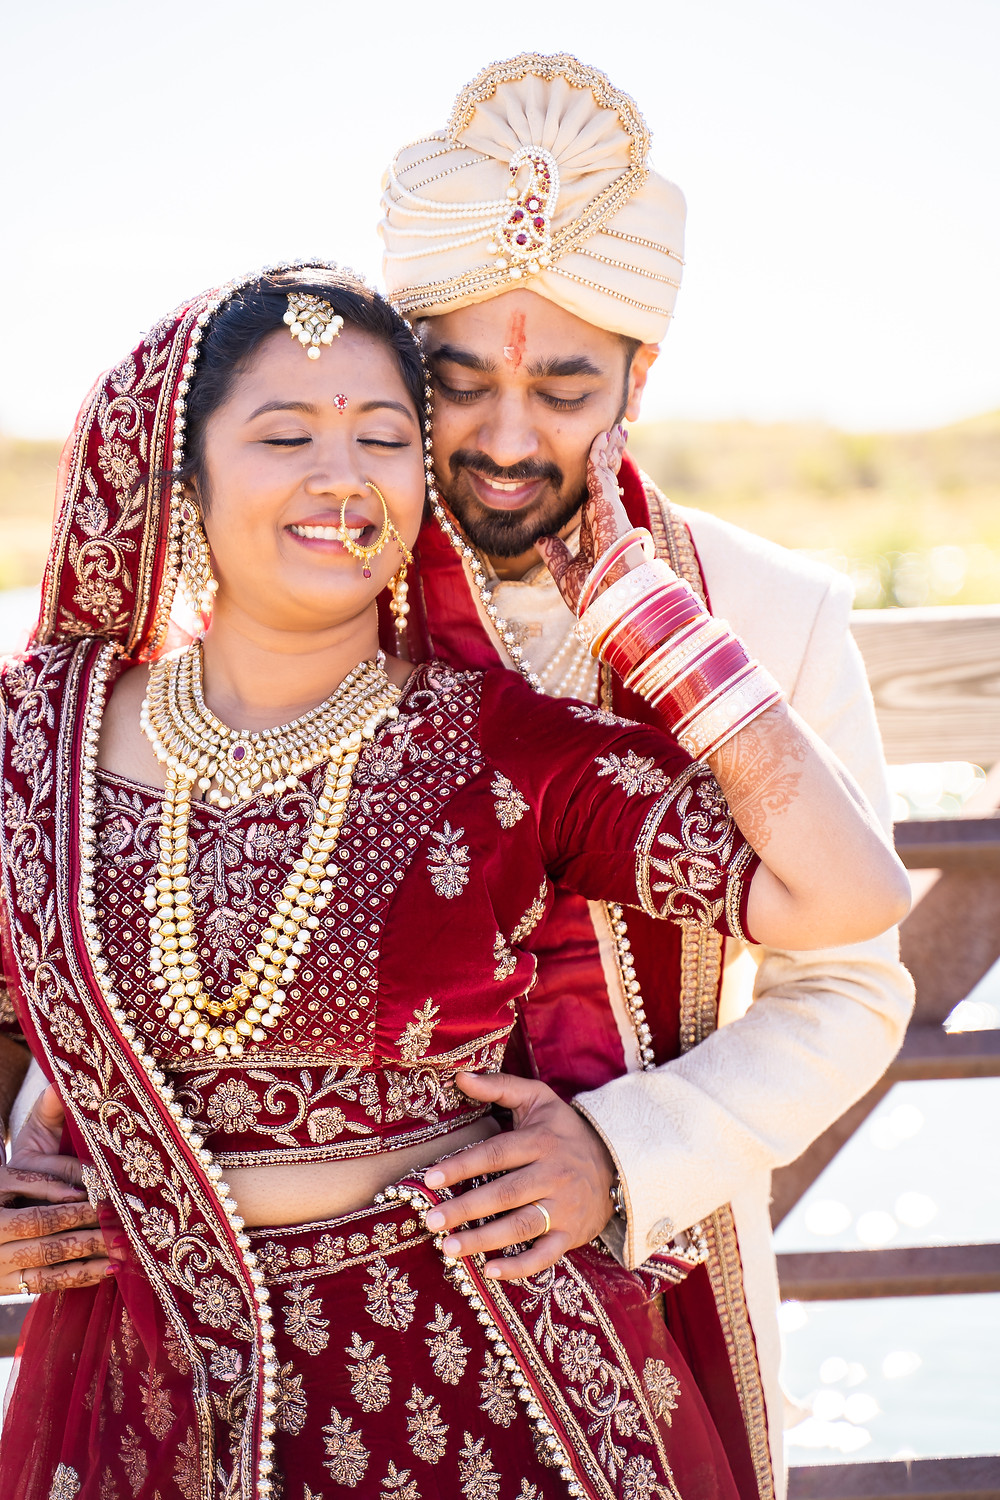 Indian wedding photographer captures image of indian husband and wife holding each other smiling.